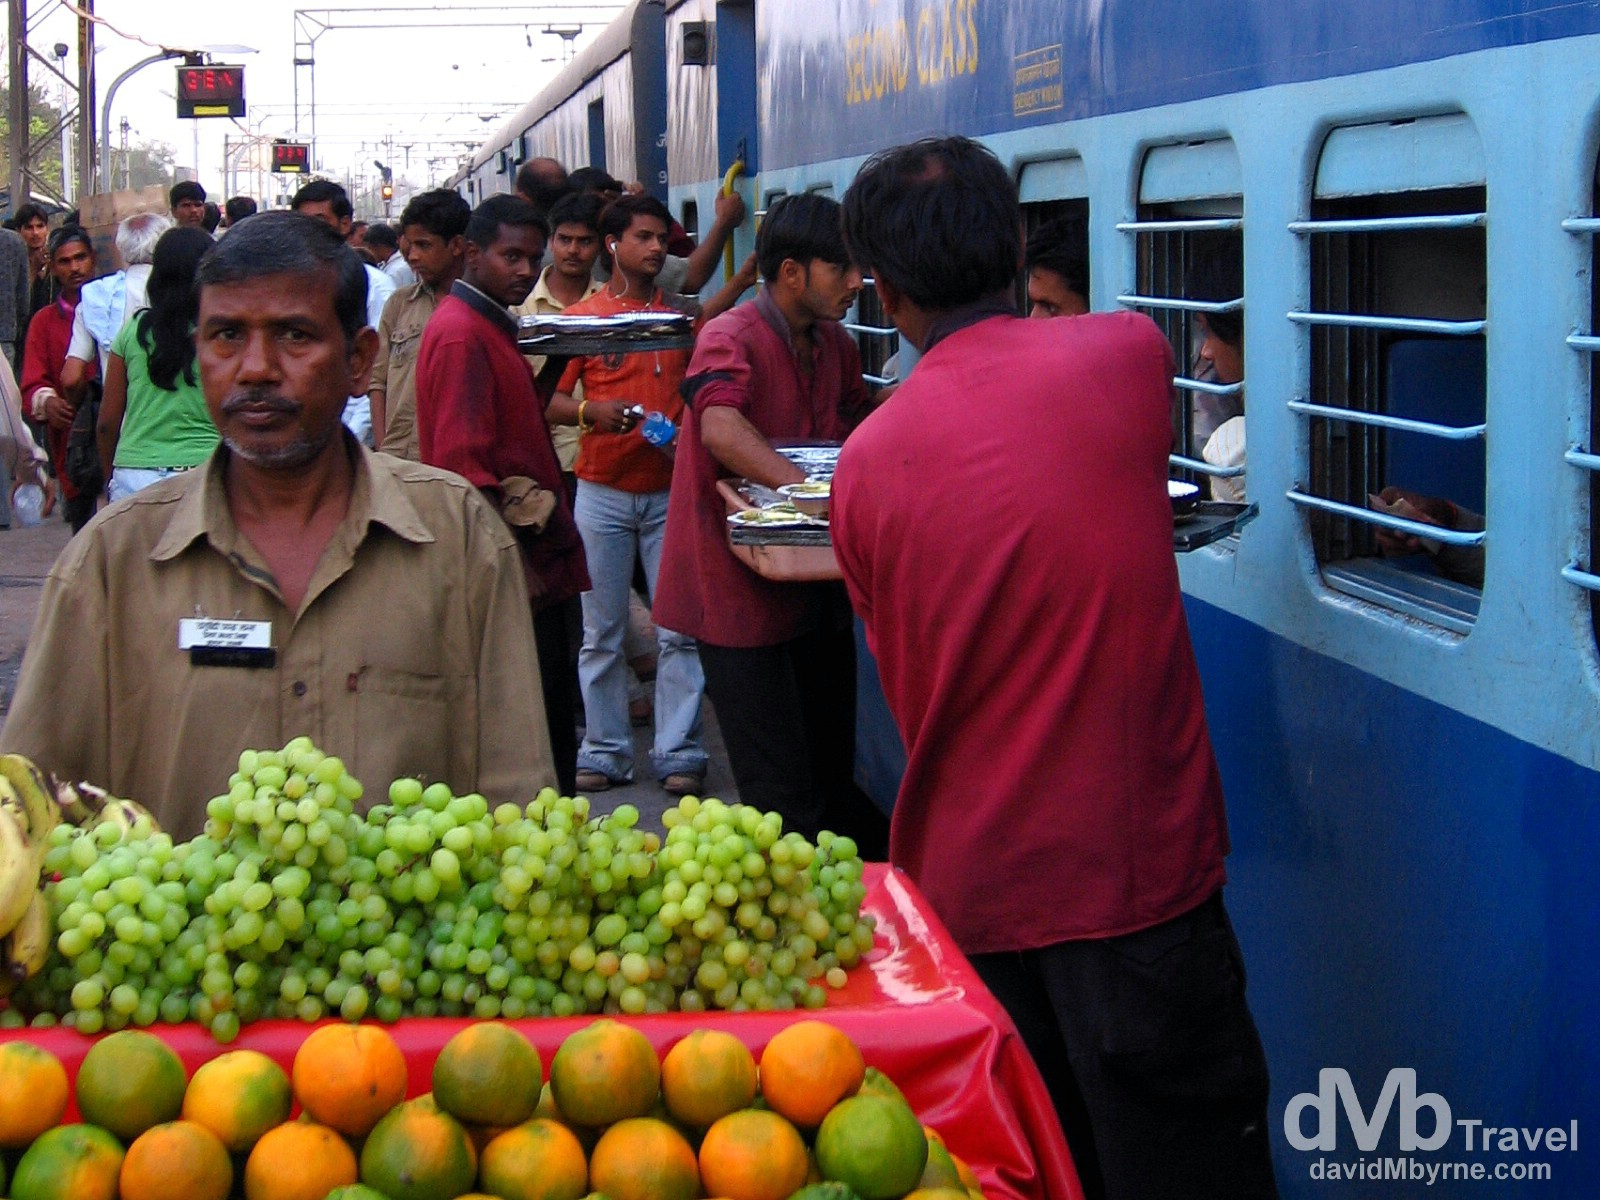 Vendors tending to the passengers on the Goa Express from the platform of Agra train station, India. March 26, 2008.